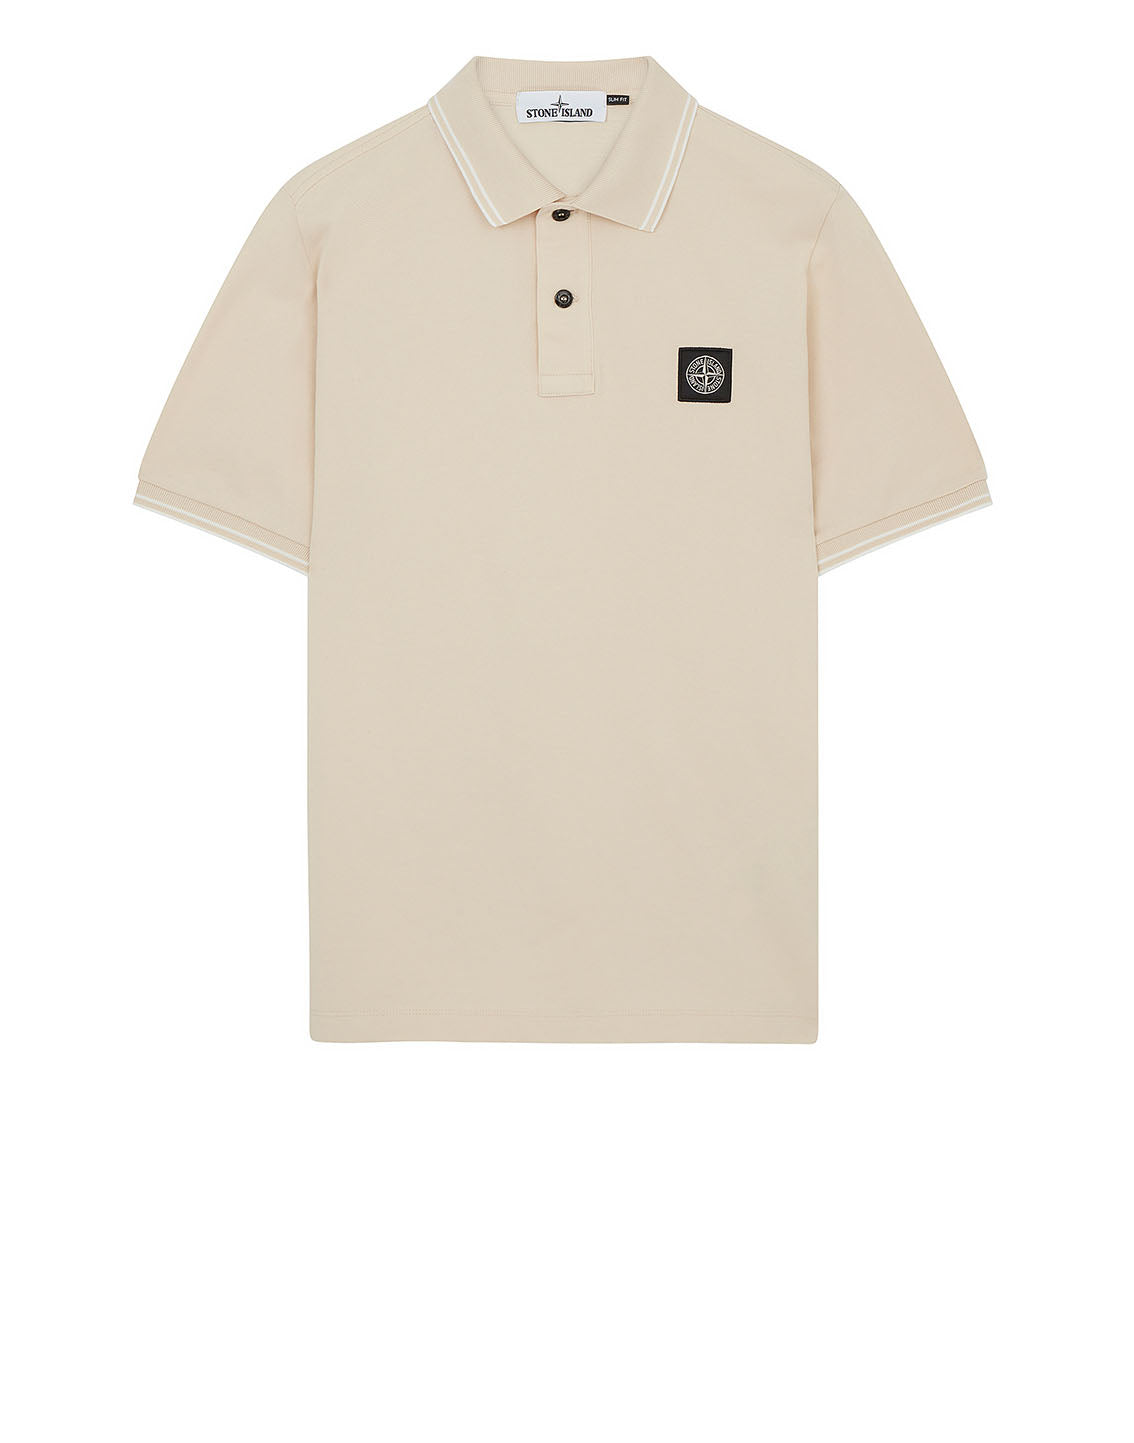 22S18 Polo Shirt in Beige